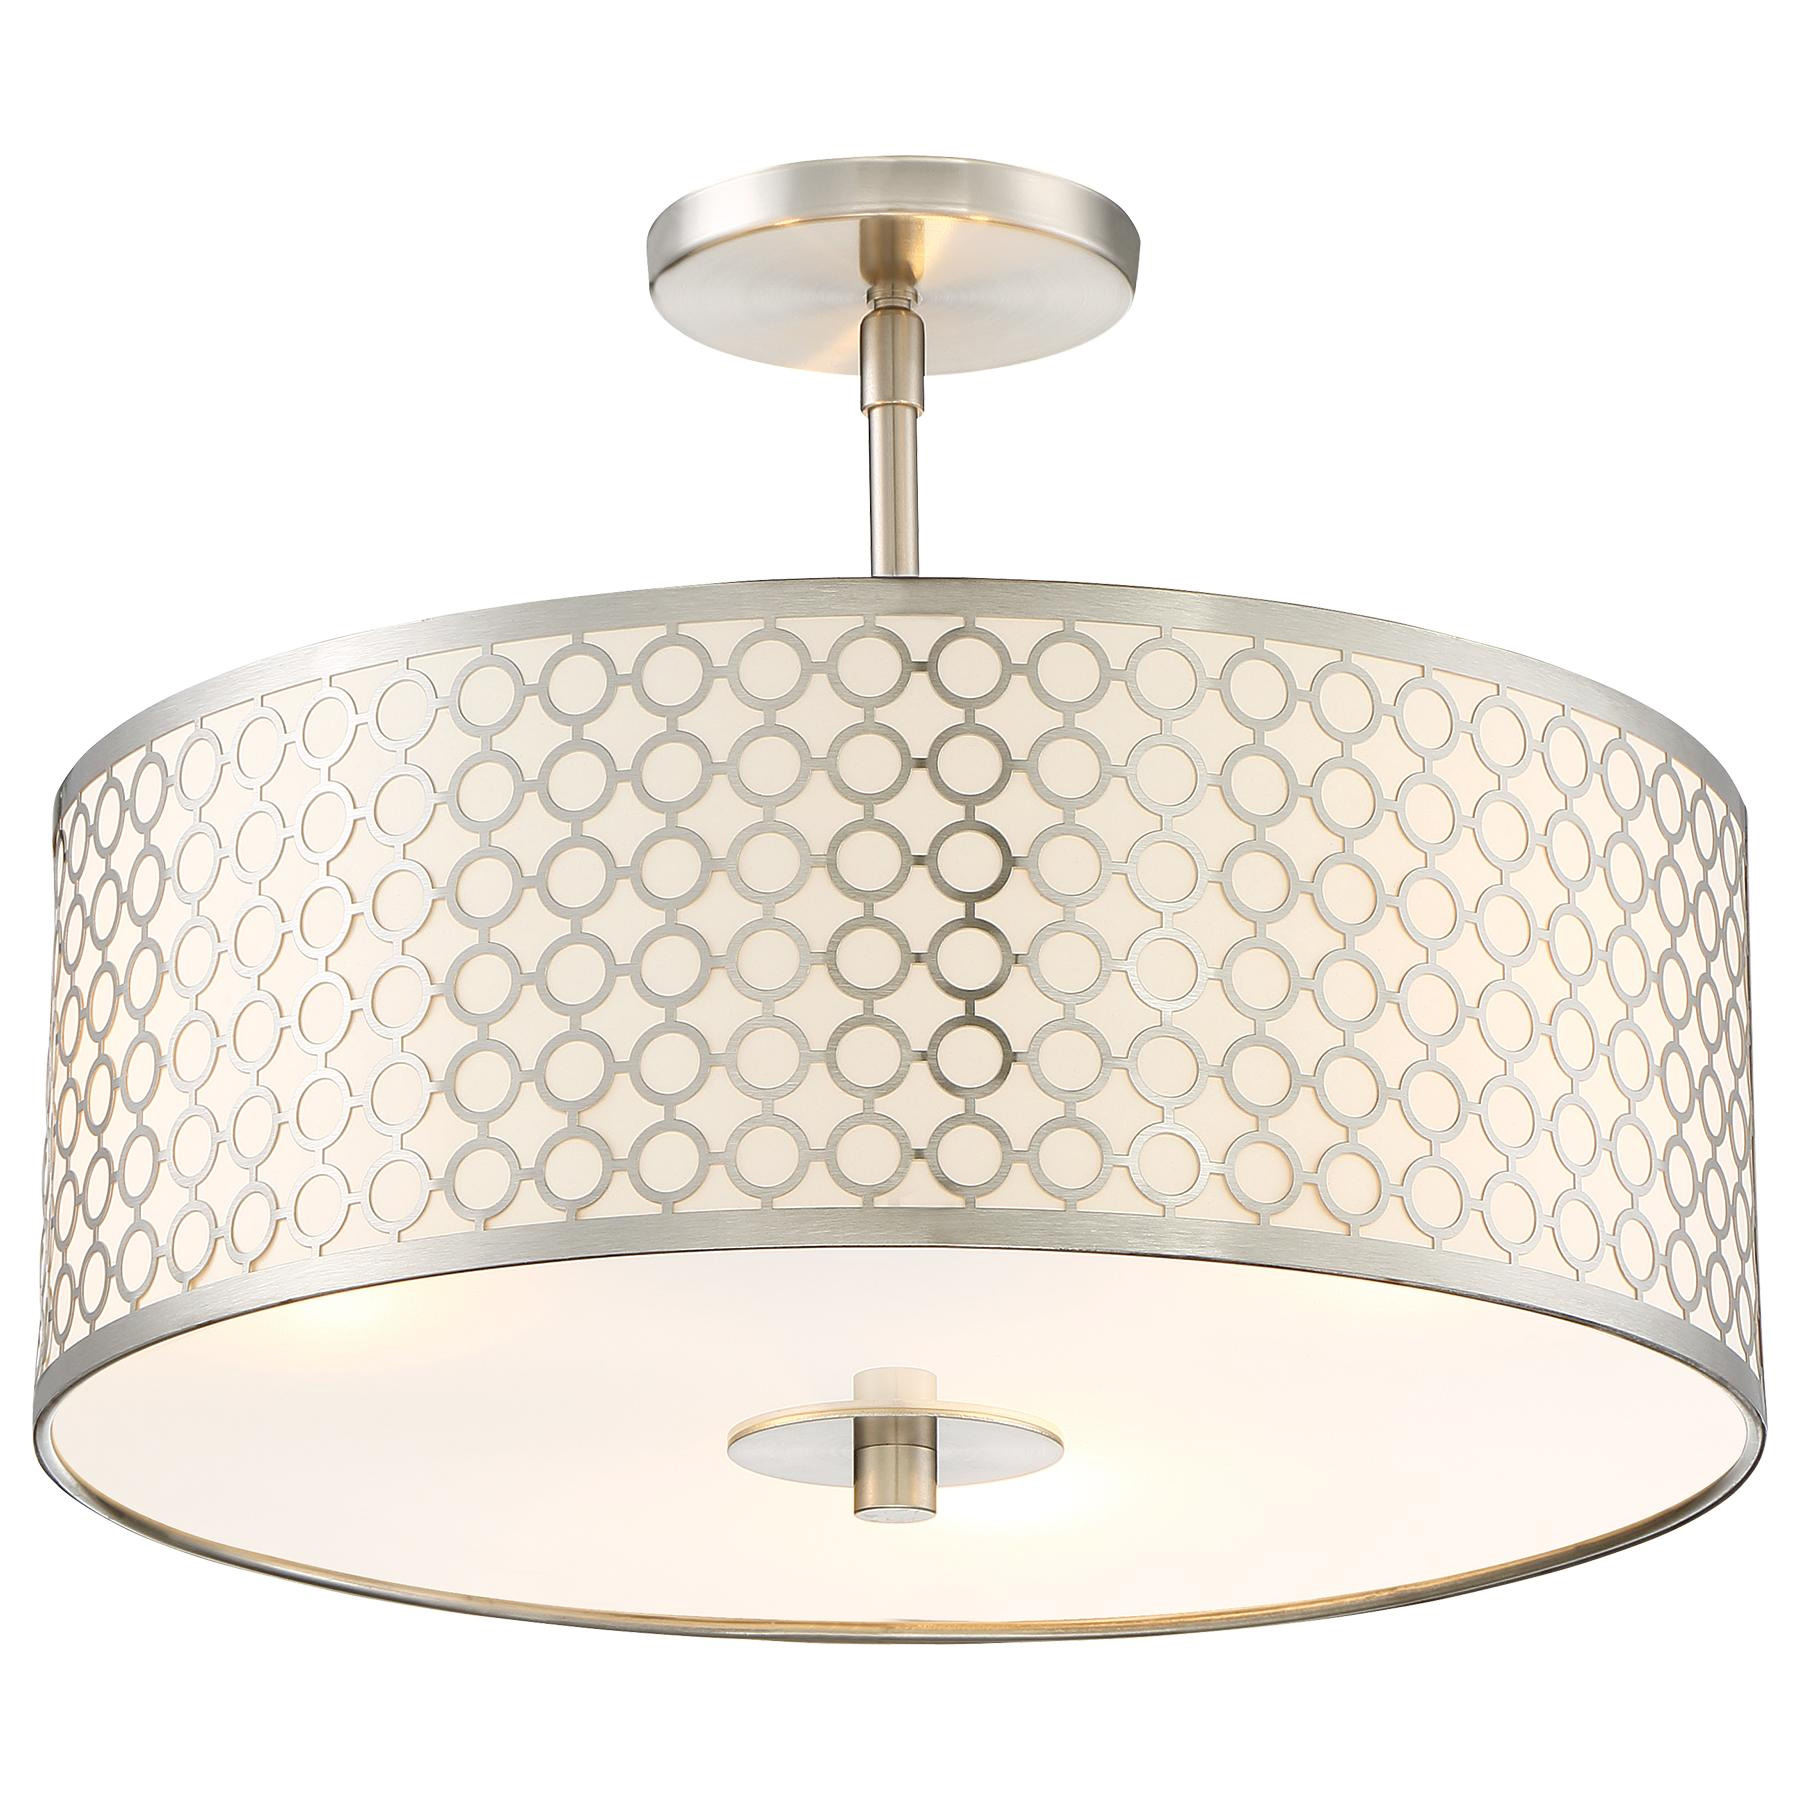 semi flush ceiling light by george kovacs  p - dots semi flush ceiling light by george kovacs  p